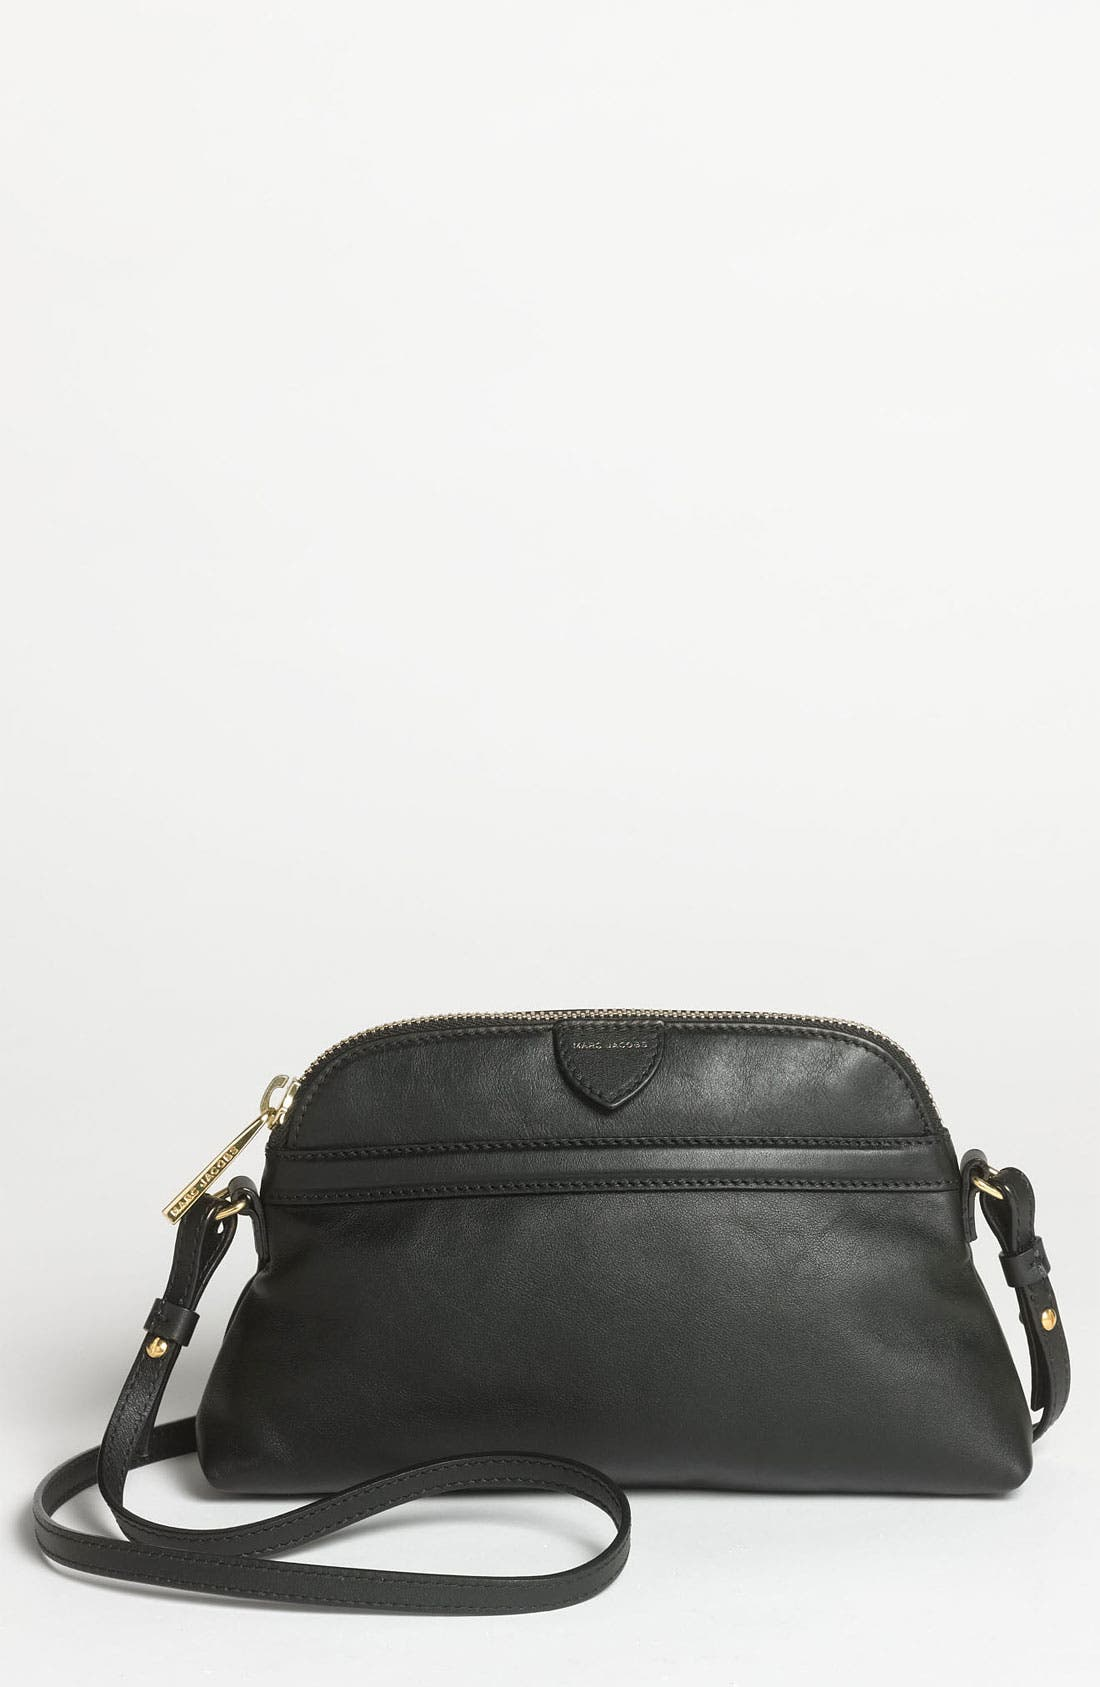 Main Image - MARC JACOBS 'Raleigh Sweetie' Convertible Leather Crossbody Bag